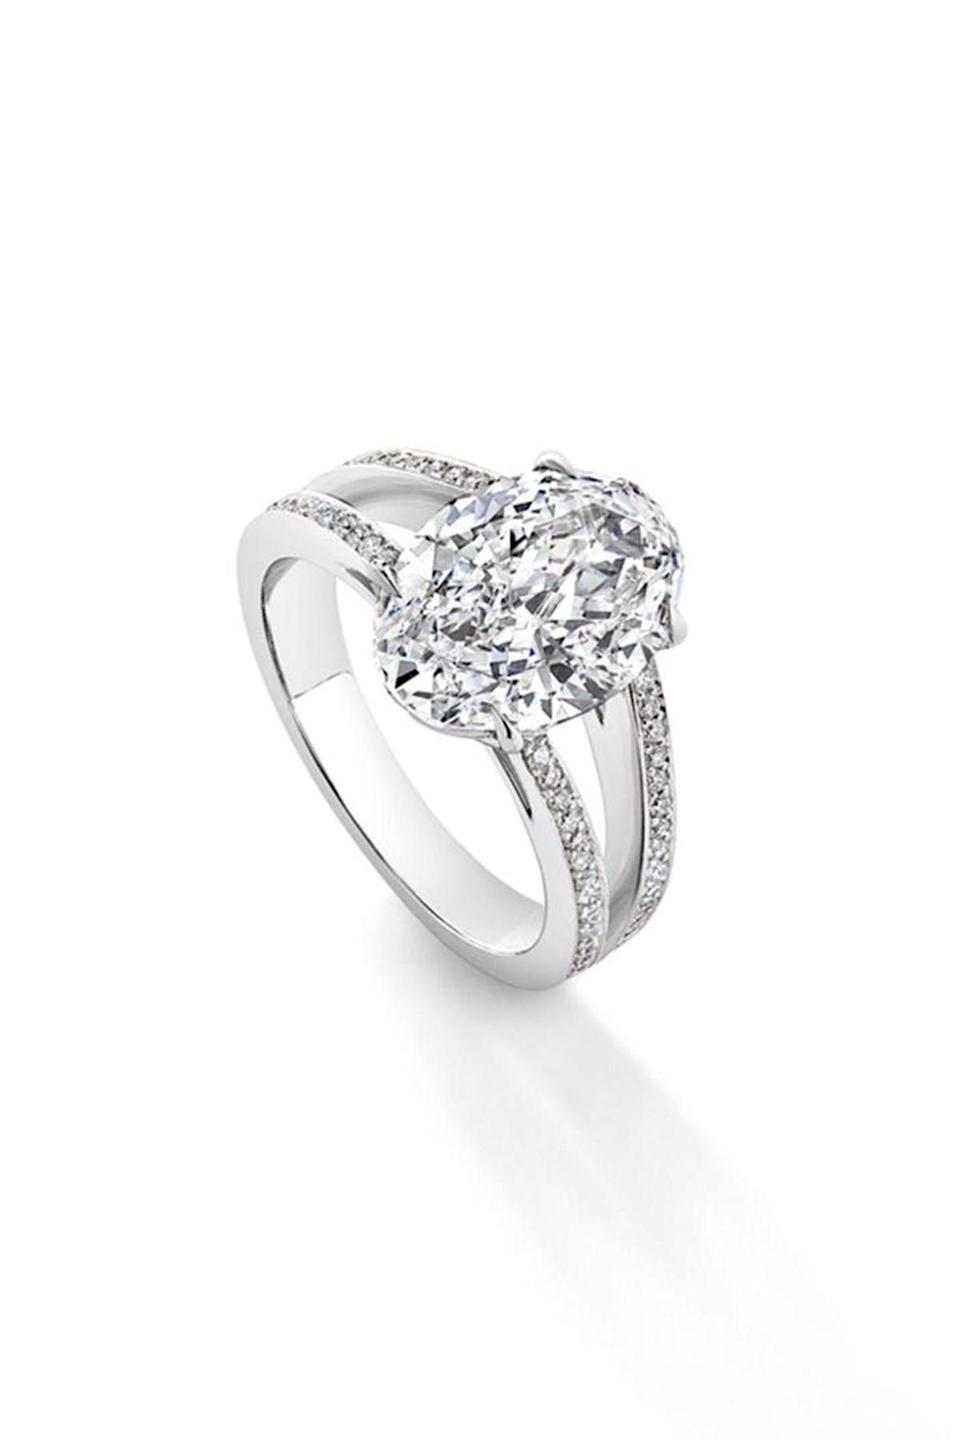 """<p><strong>Asprey</strong></p><p>asprey.com</p><p><strong>$115000.00</strong></p><p><a href=""""https://www.asprey.com/us/oval-diamond-pave-split-shank.html"""" rel=""""nofollow noopener"""" target=""""_blank"""" data-ylk=""""slk:Shop Now"""" class=""""link rapid-noclick-resp"""">Shop Now</a></p><p>Most brides opt for round or princess-cut diamonds, but an oval can have just as much sparkle and adds an out-of-the-ordinary elegance. </p>"""